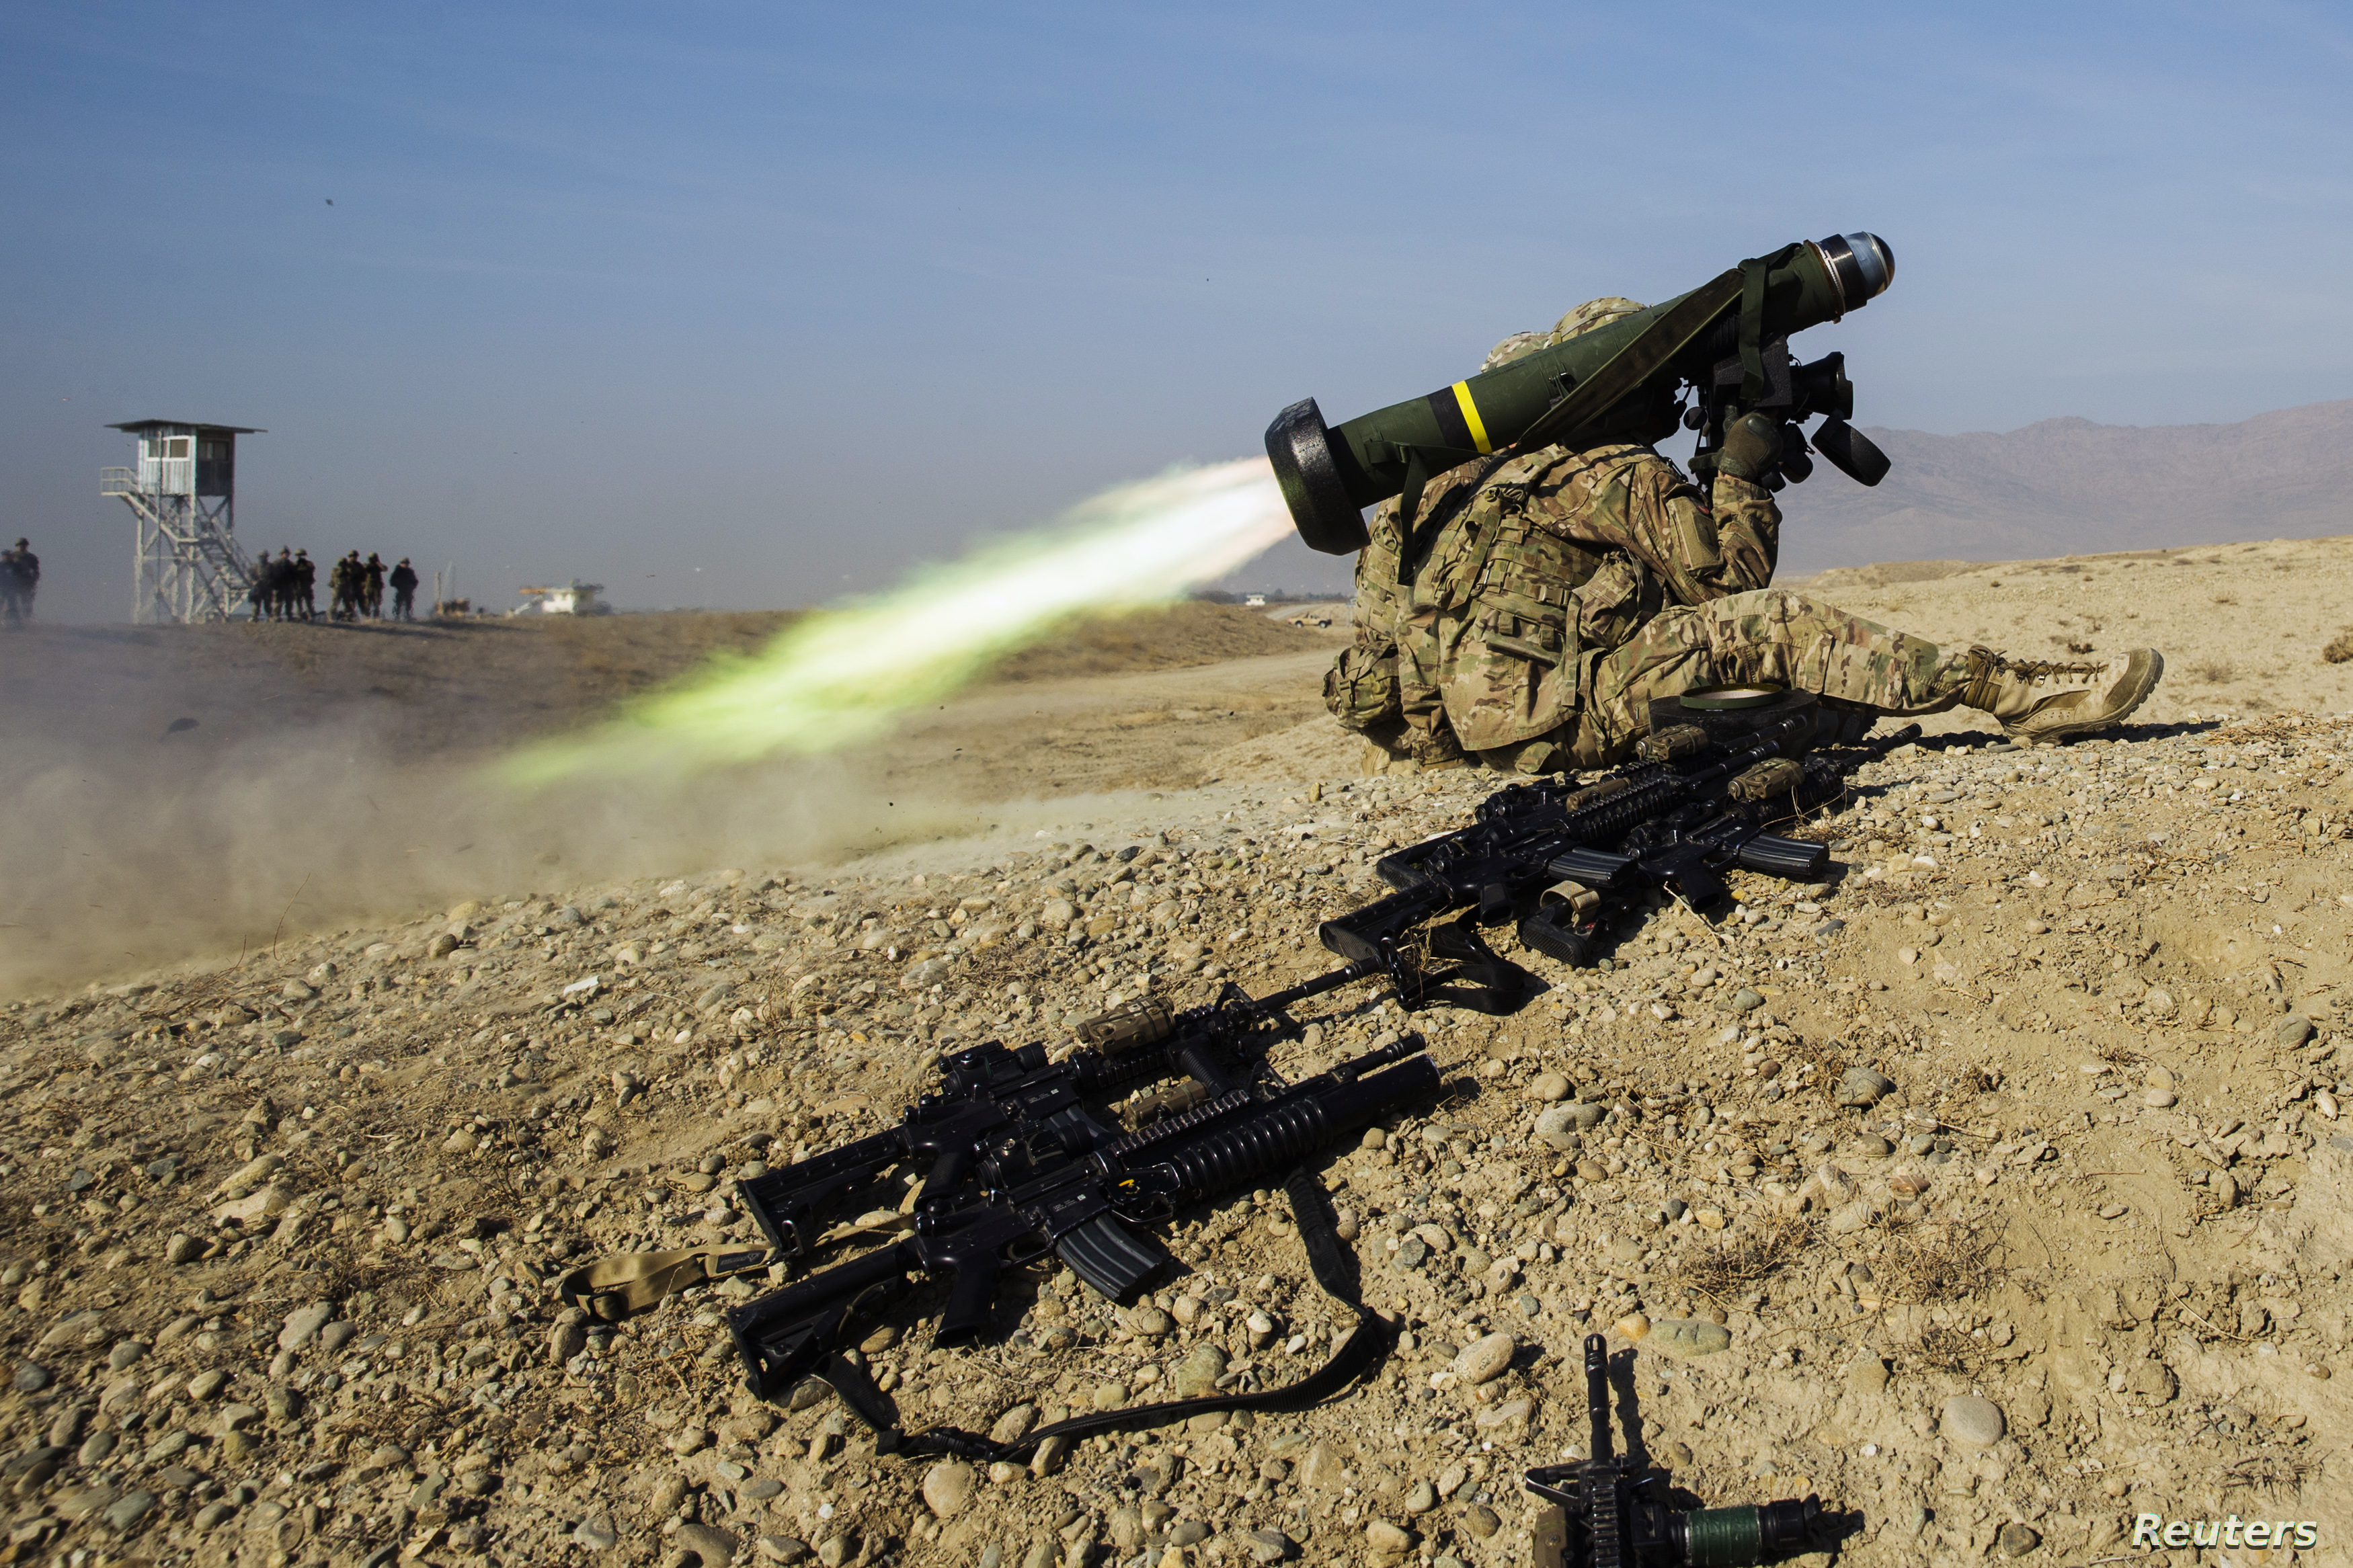 A U.S. soldier from Dragon Troop of the 3rd Cavalry Regiment fires a Javelin missile system during their first training exercise of the new year near operating base Gamberi in the Laghman province of Afghanistan January 1, 2015. REUTERS/Lucas Jackson...